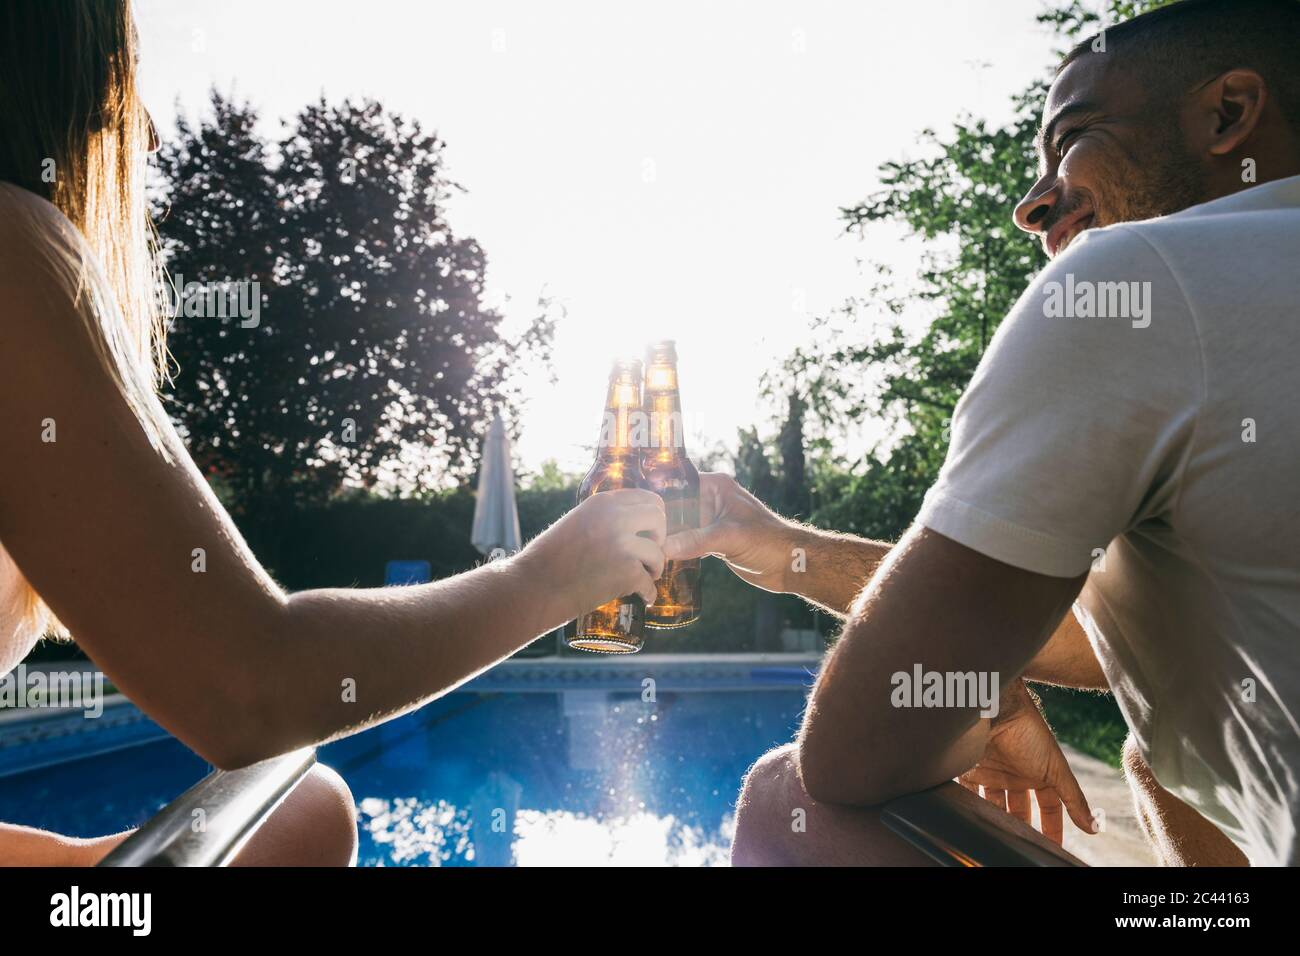 Young couple toasting beer bottle while sitting at poolside Stock Photo